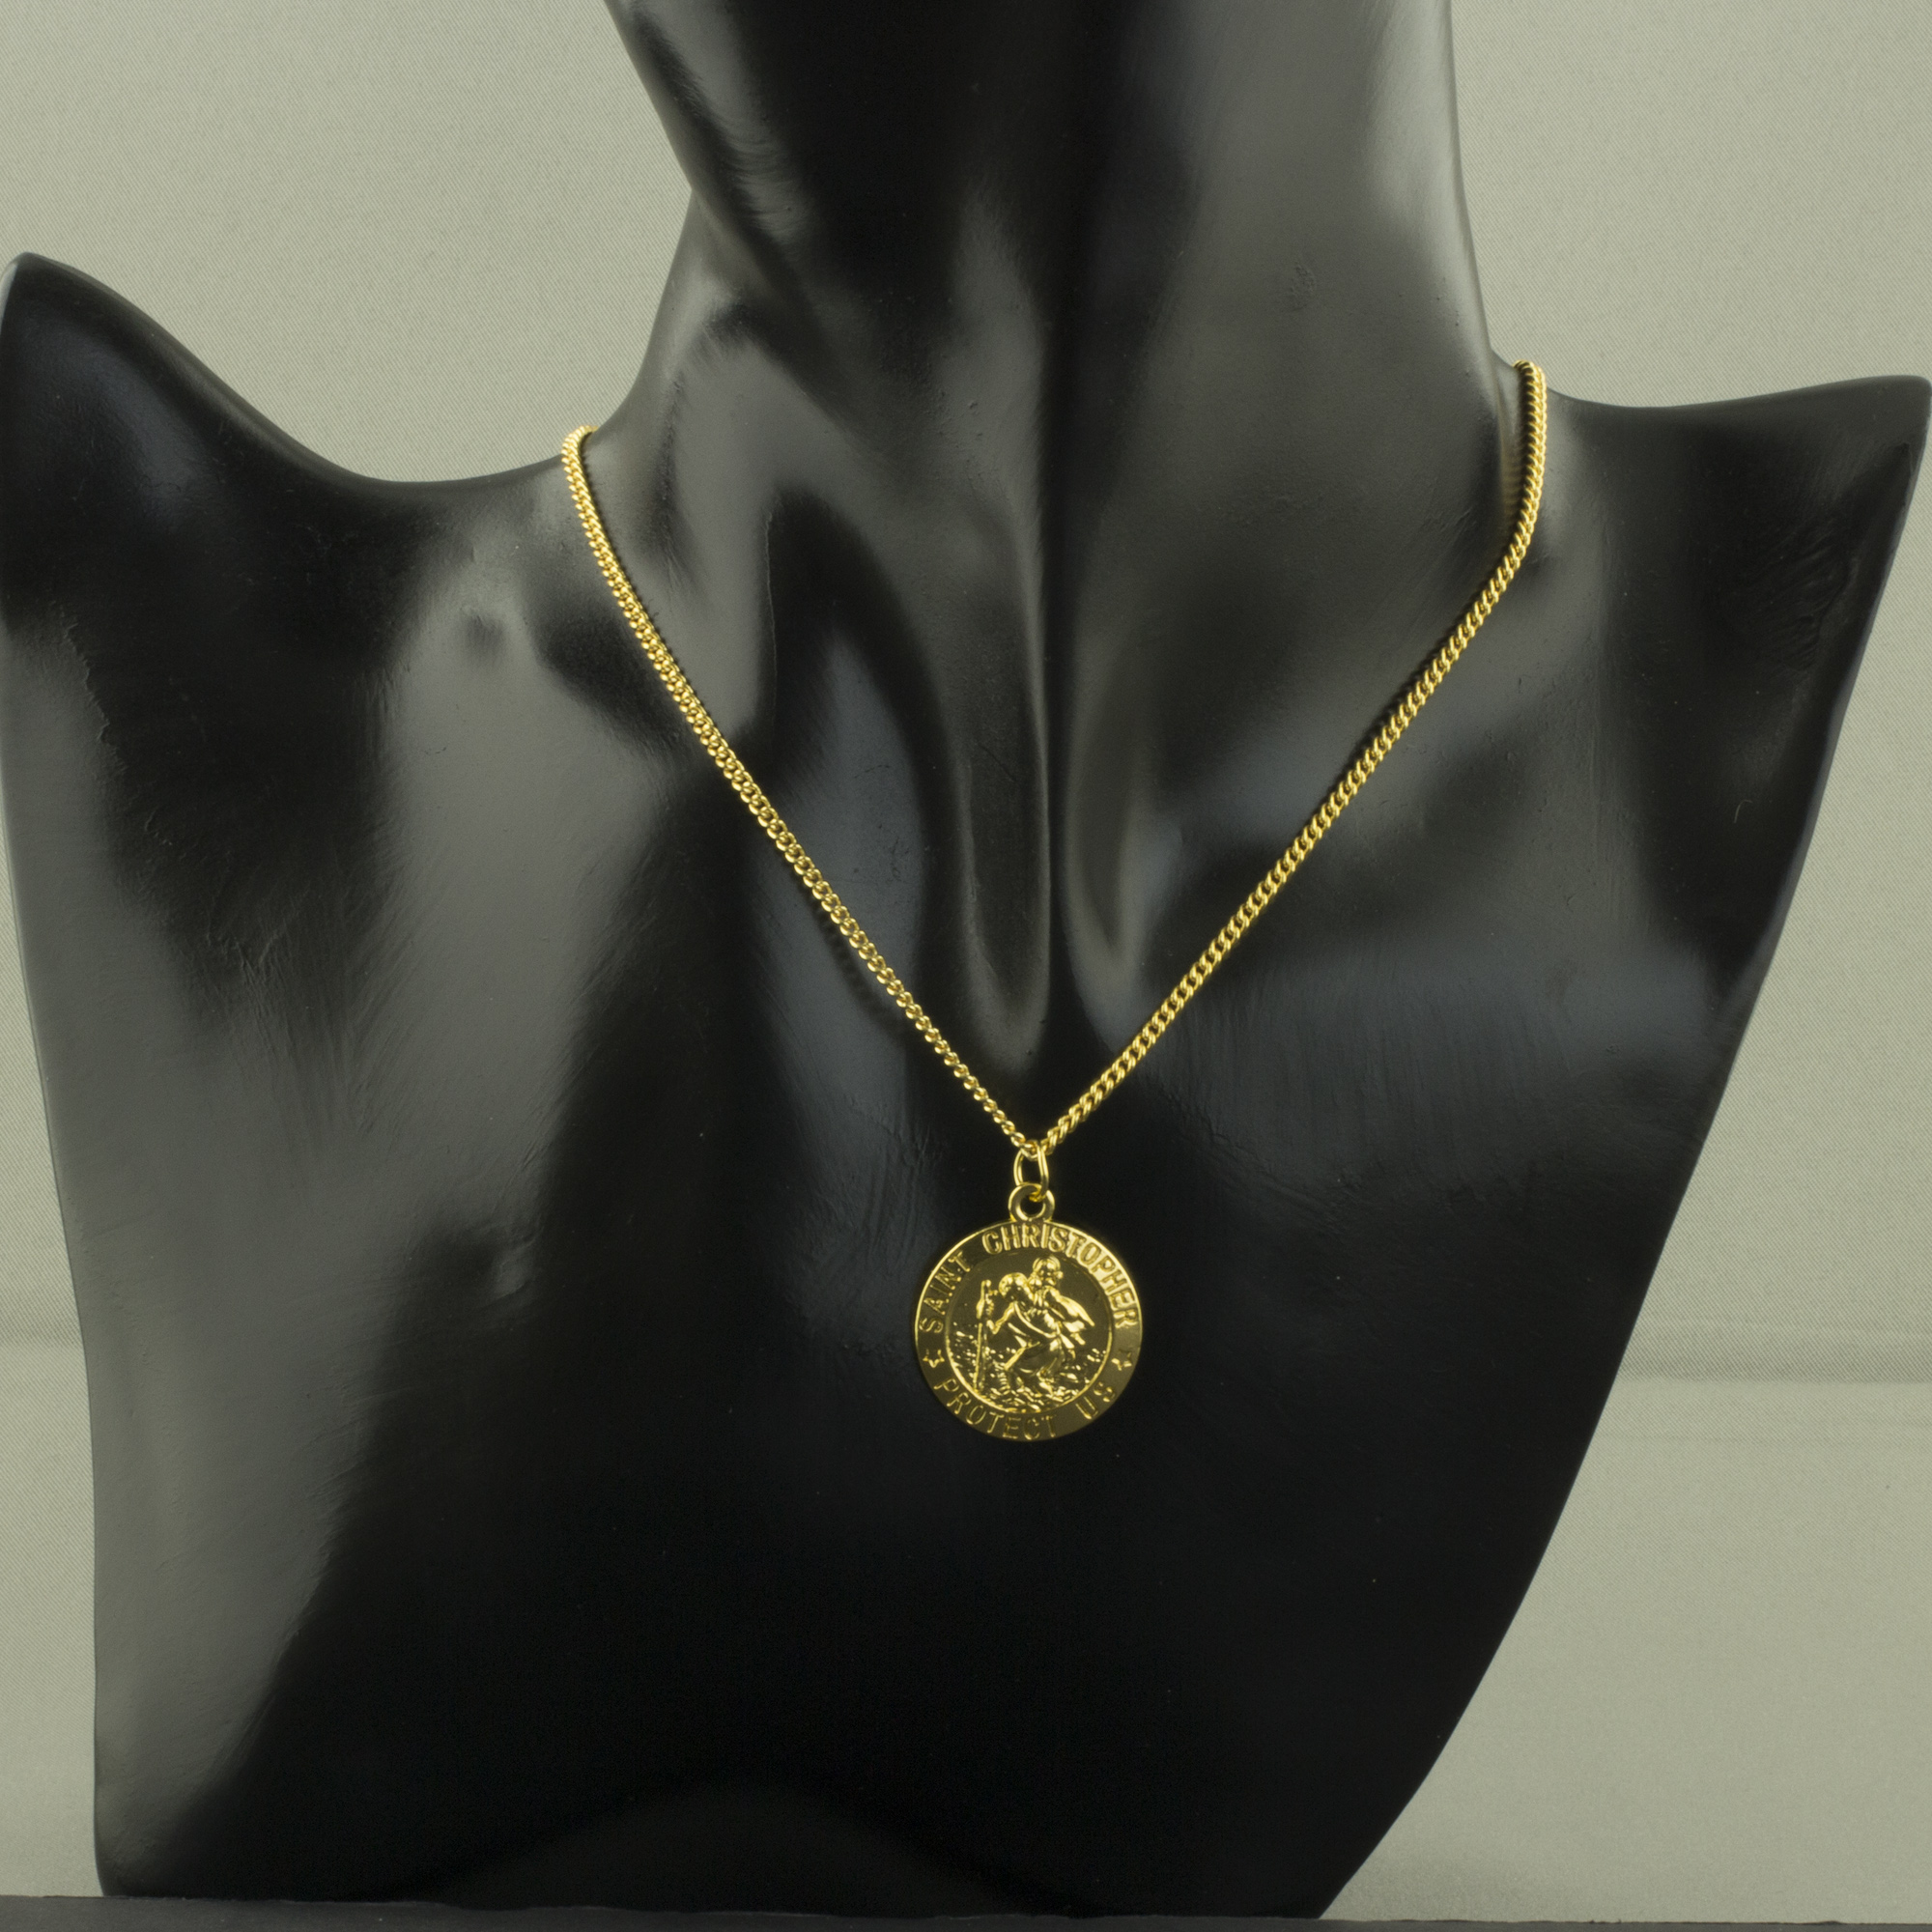 holly indian necklace inspiration interesting gold etsy ebay designs willoughby pendant miracle uk mens